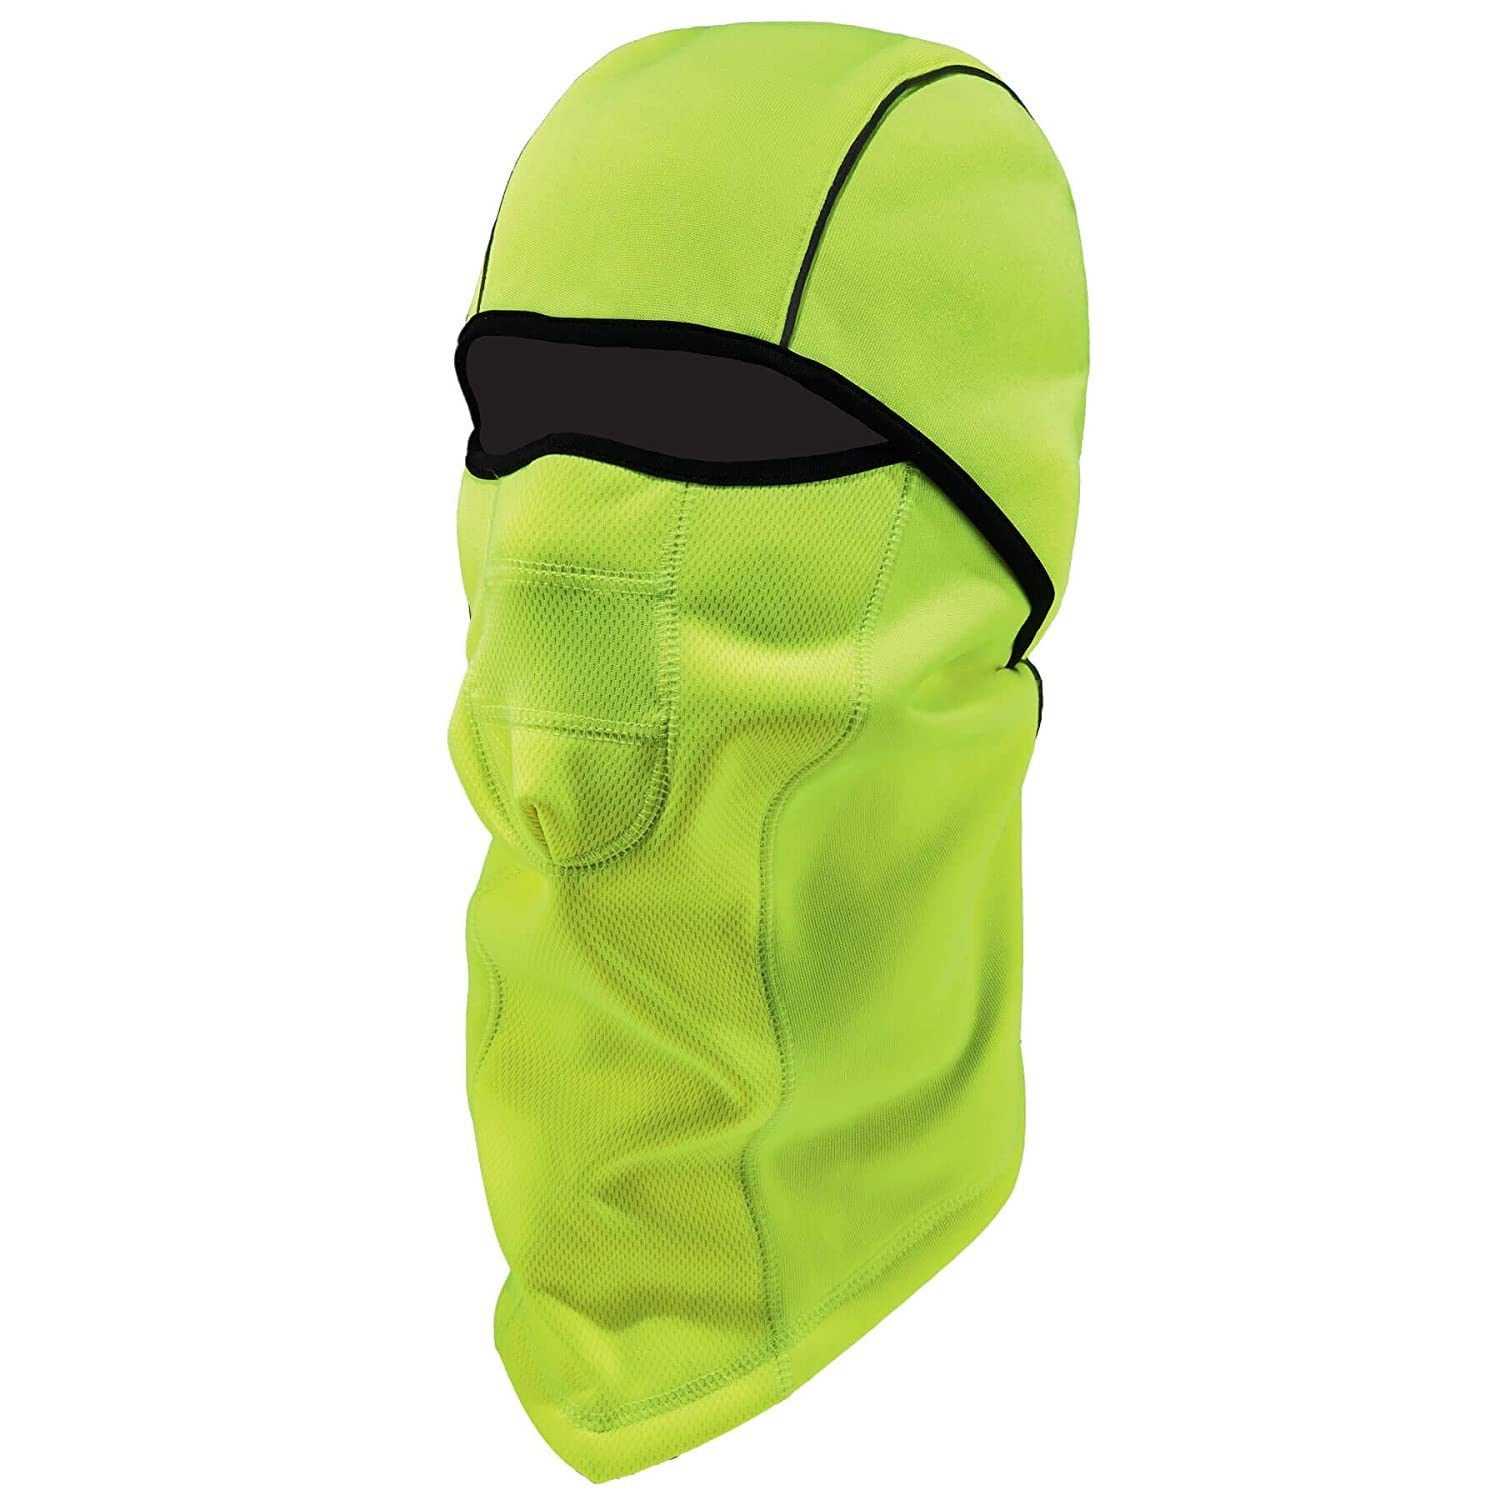 Ergodyne N-Ferno 6823 Winter Ski Mask Balaclava, Wind-Resistant Face Mask, Thermal Fleece, Hi Vis